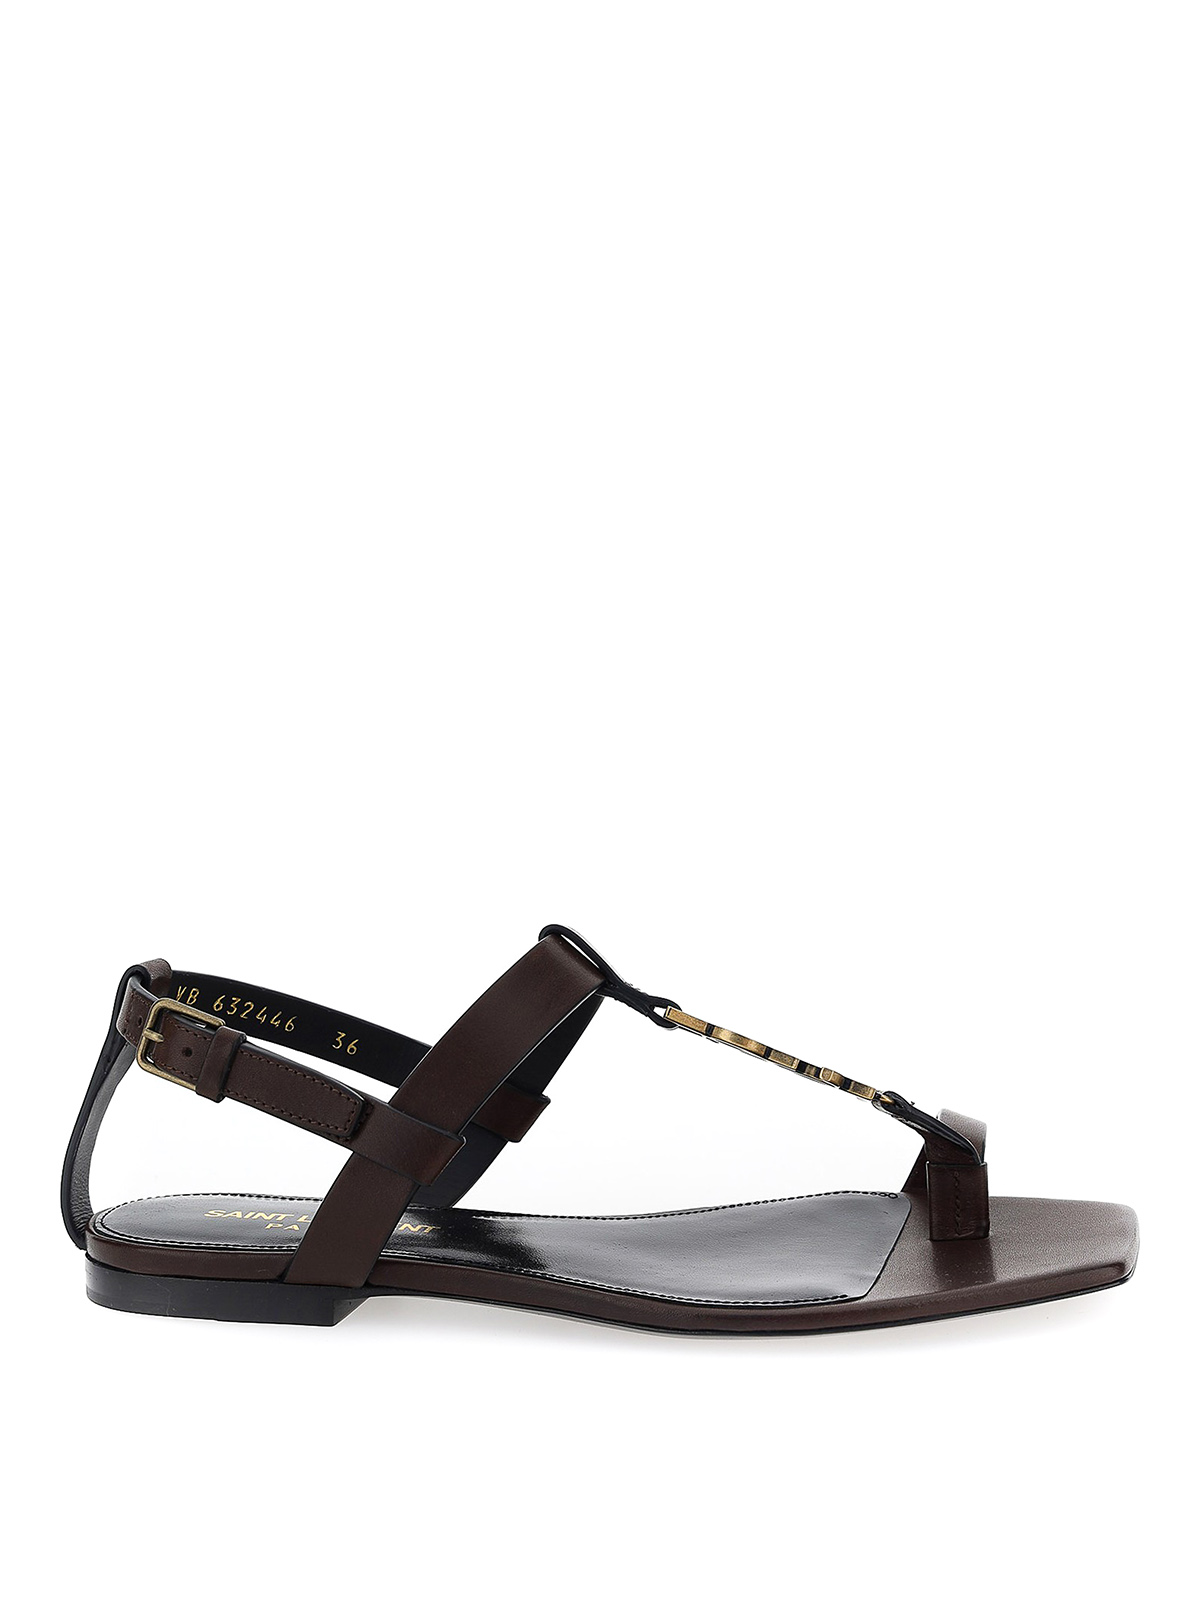 SAINT LAURENT CASSANDRA SANDALS IN BROWN